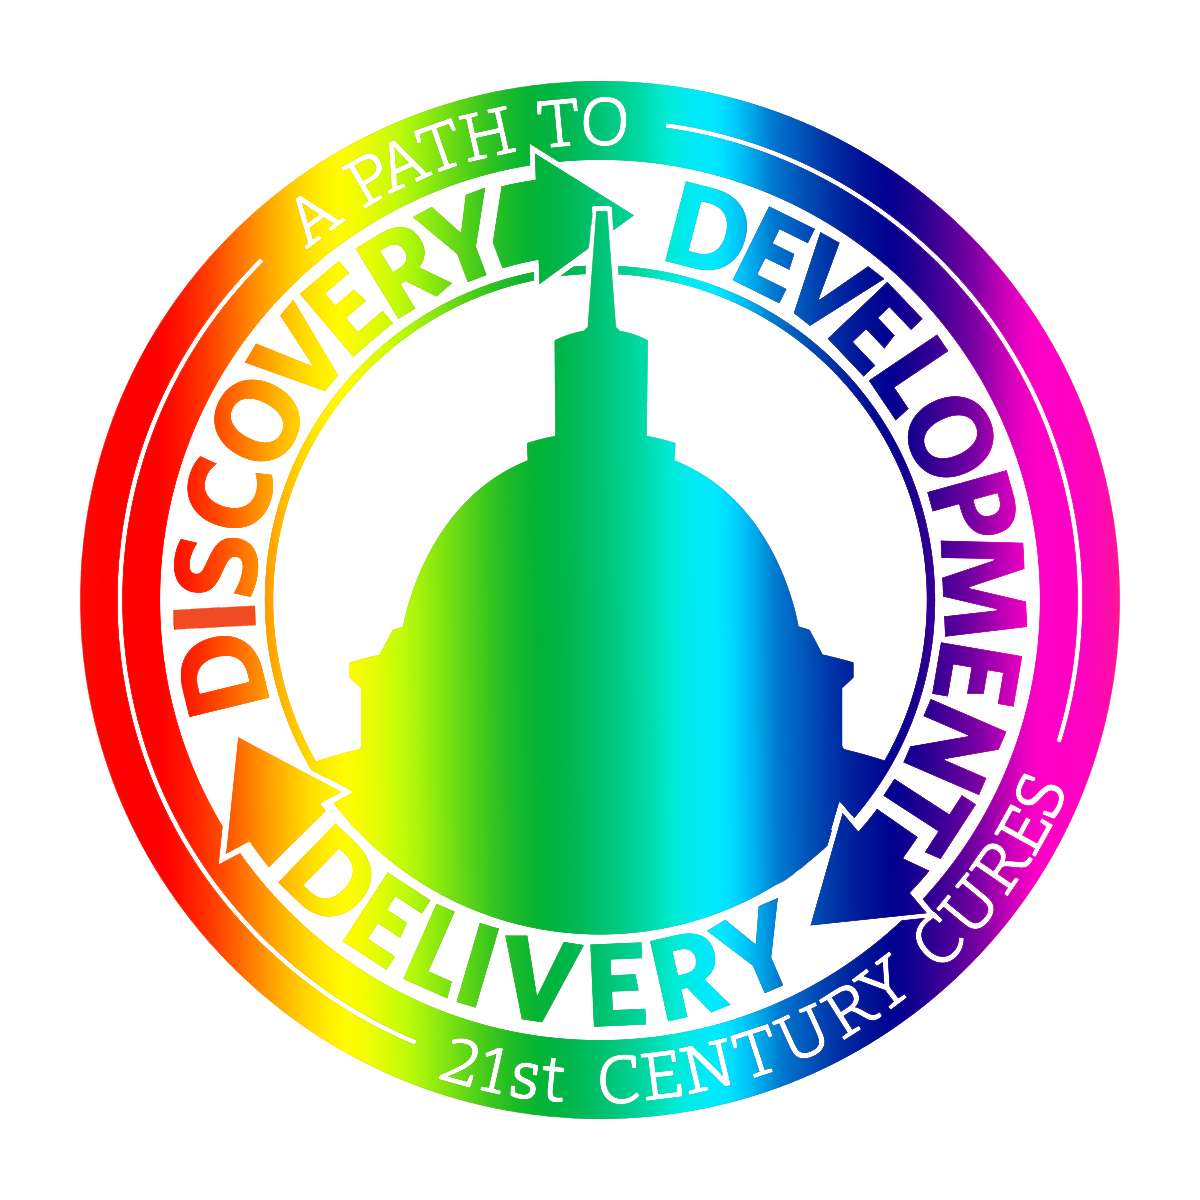 "The logo for the 21st Century Cures Act in a rainbow gradient. The outer ring of the logo says ""A PATH TO 21st CENTURY CURES"". The inner ring of the logo says ""DISCOVERY -> DEVELOPMENT -> DELIVERY"". In the very center is a profile of the capitol building."